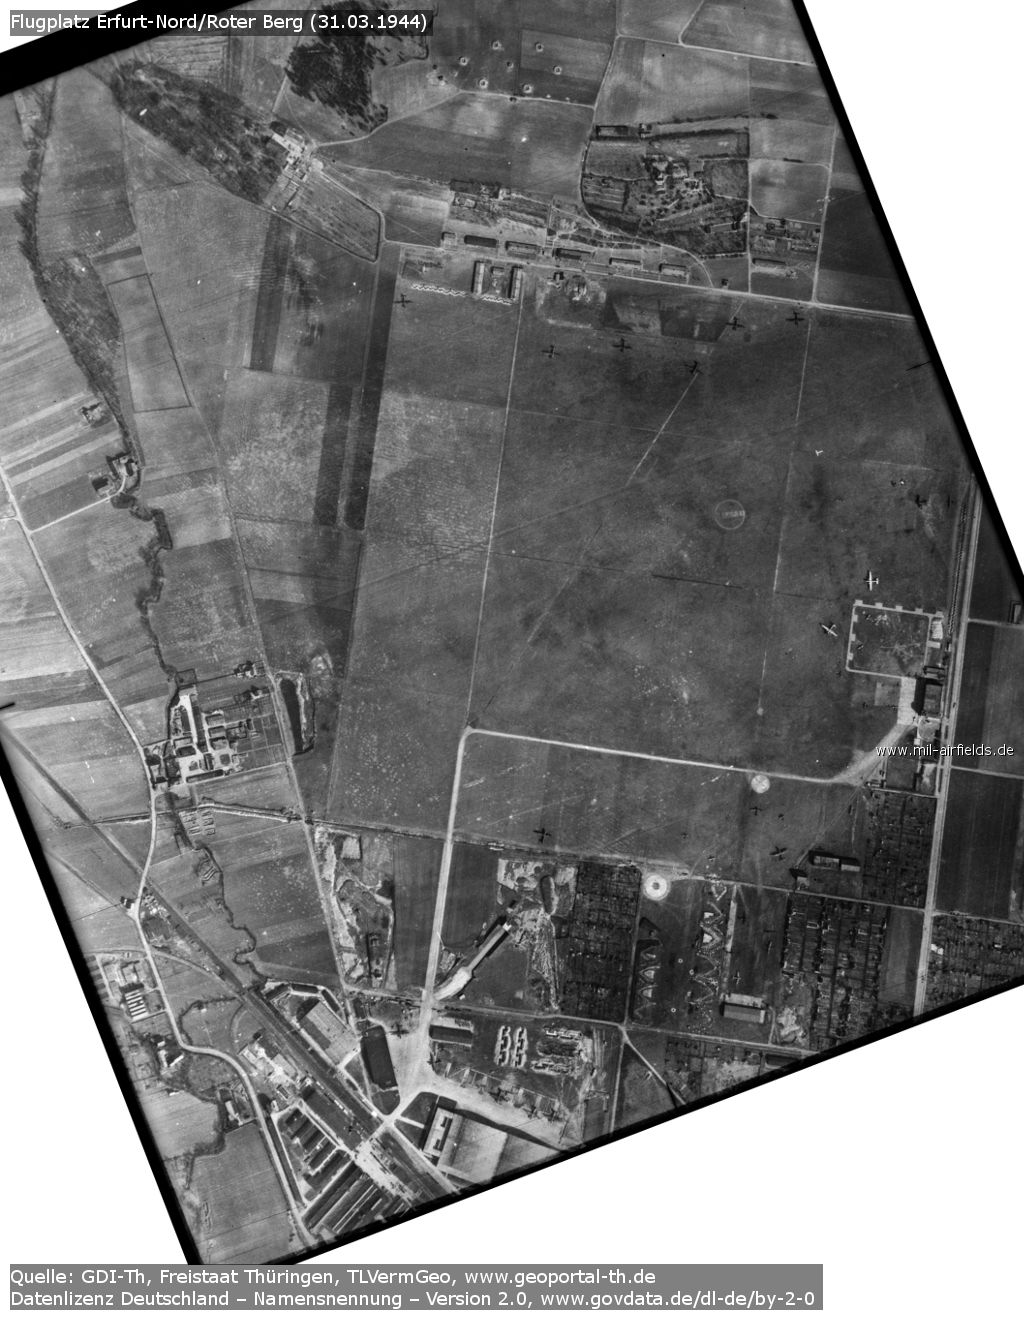 Aerial picture of Erfurt North airfield, Germany, from 31 March 1944